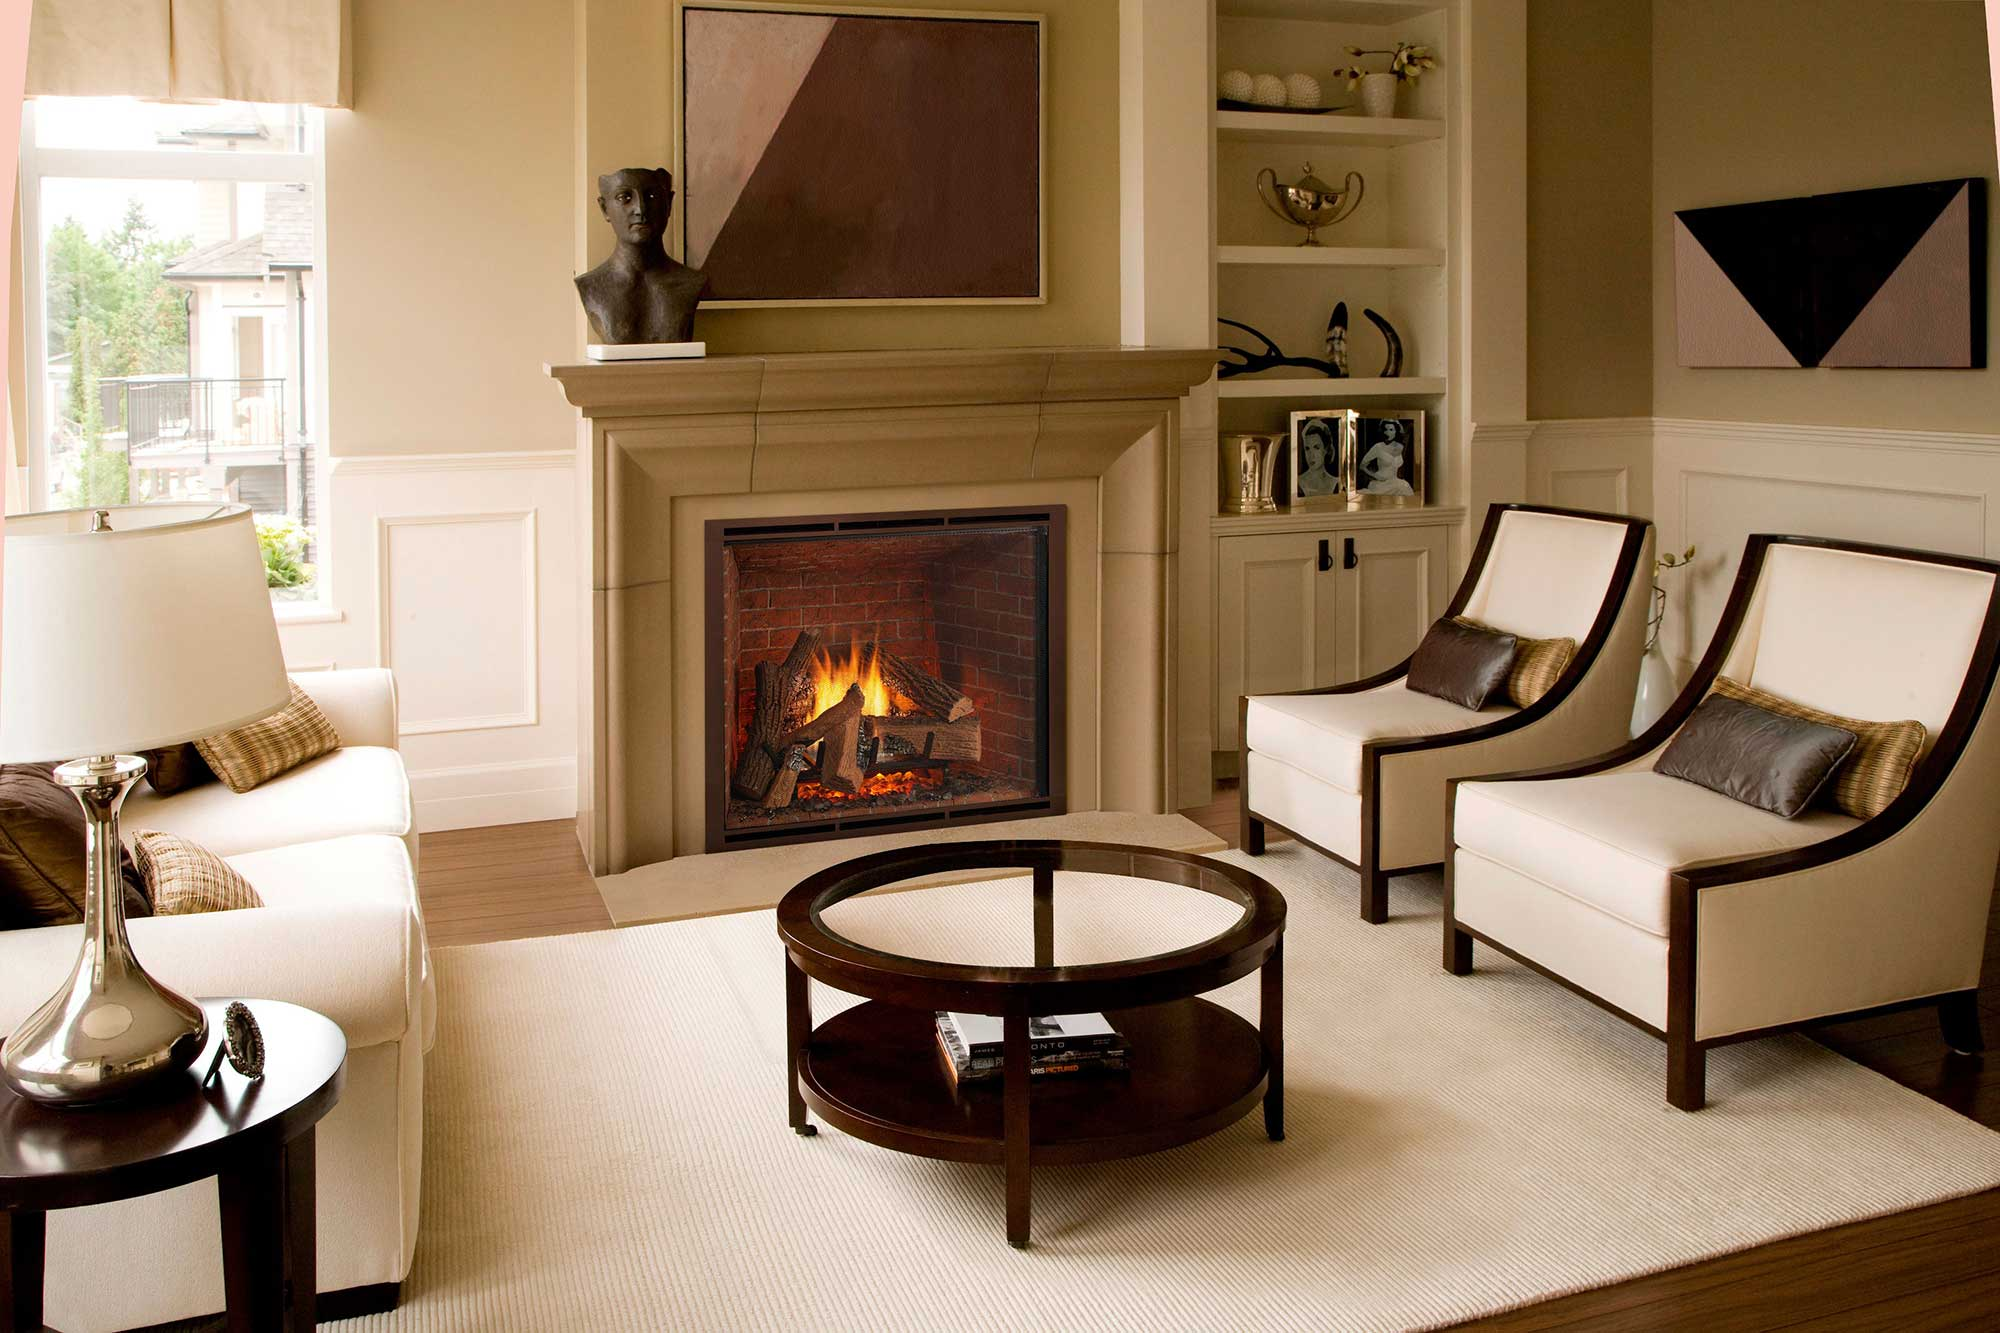 Fireplace & Wood Stove Installation Portland Oregon Pellet